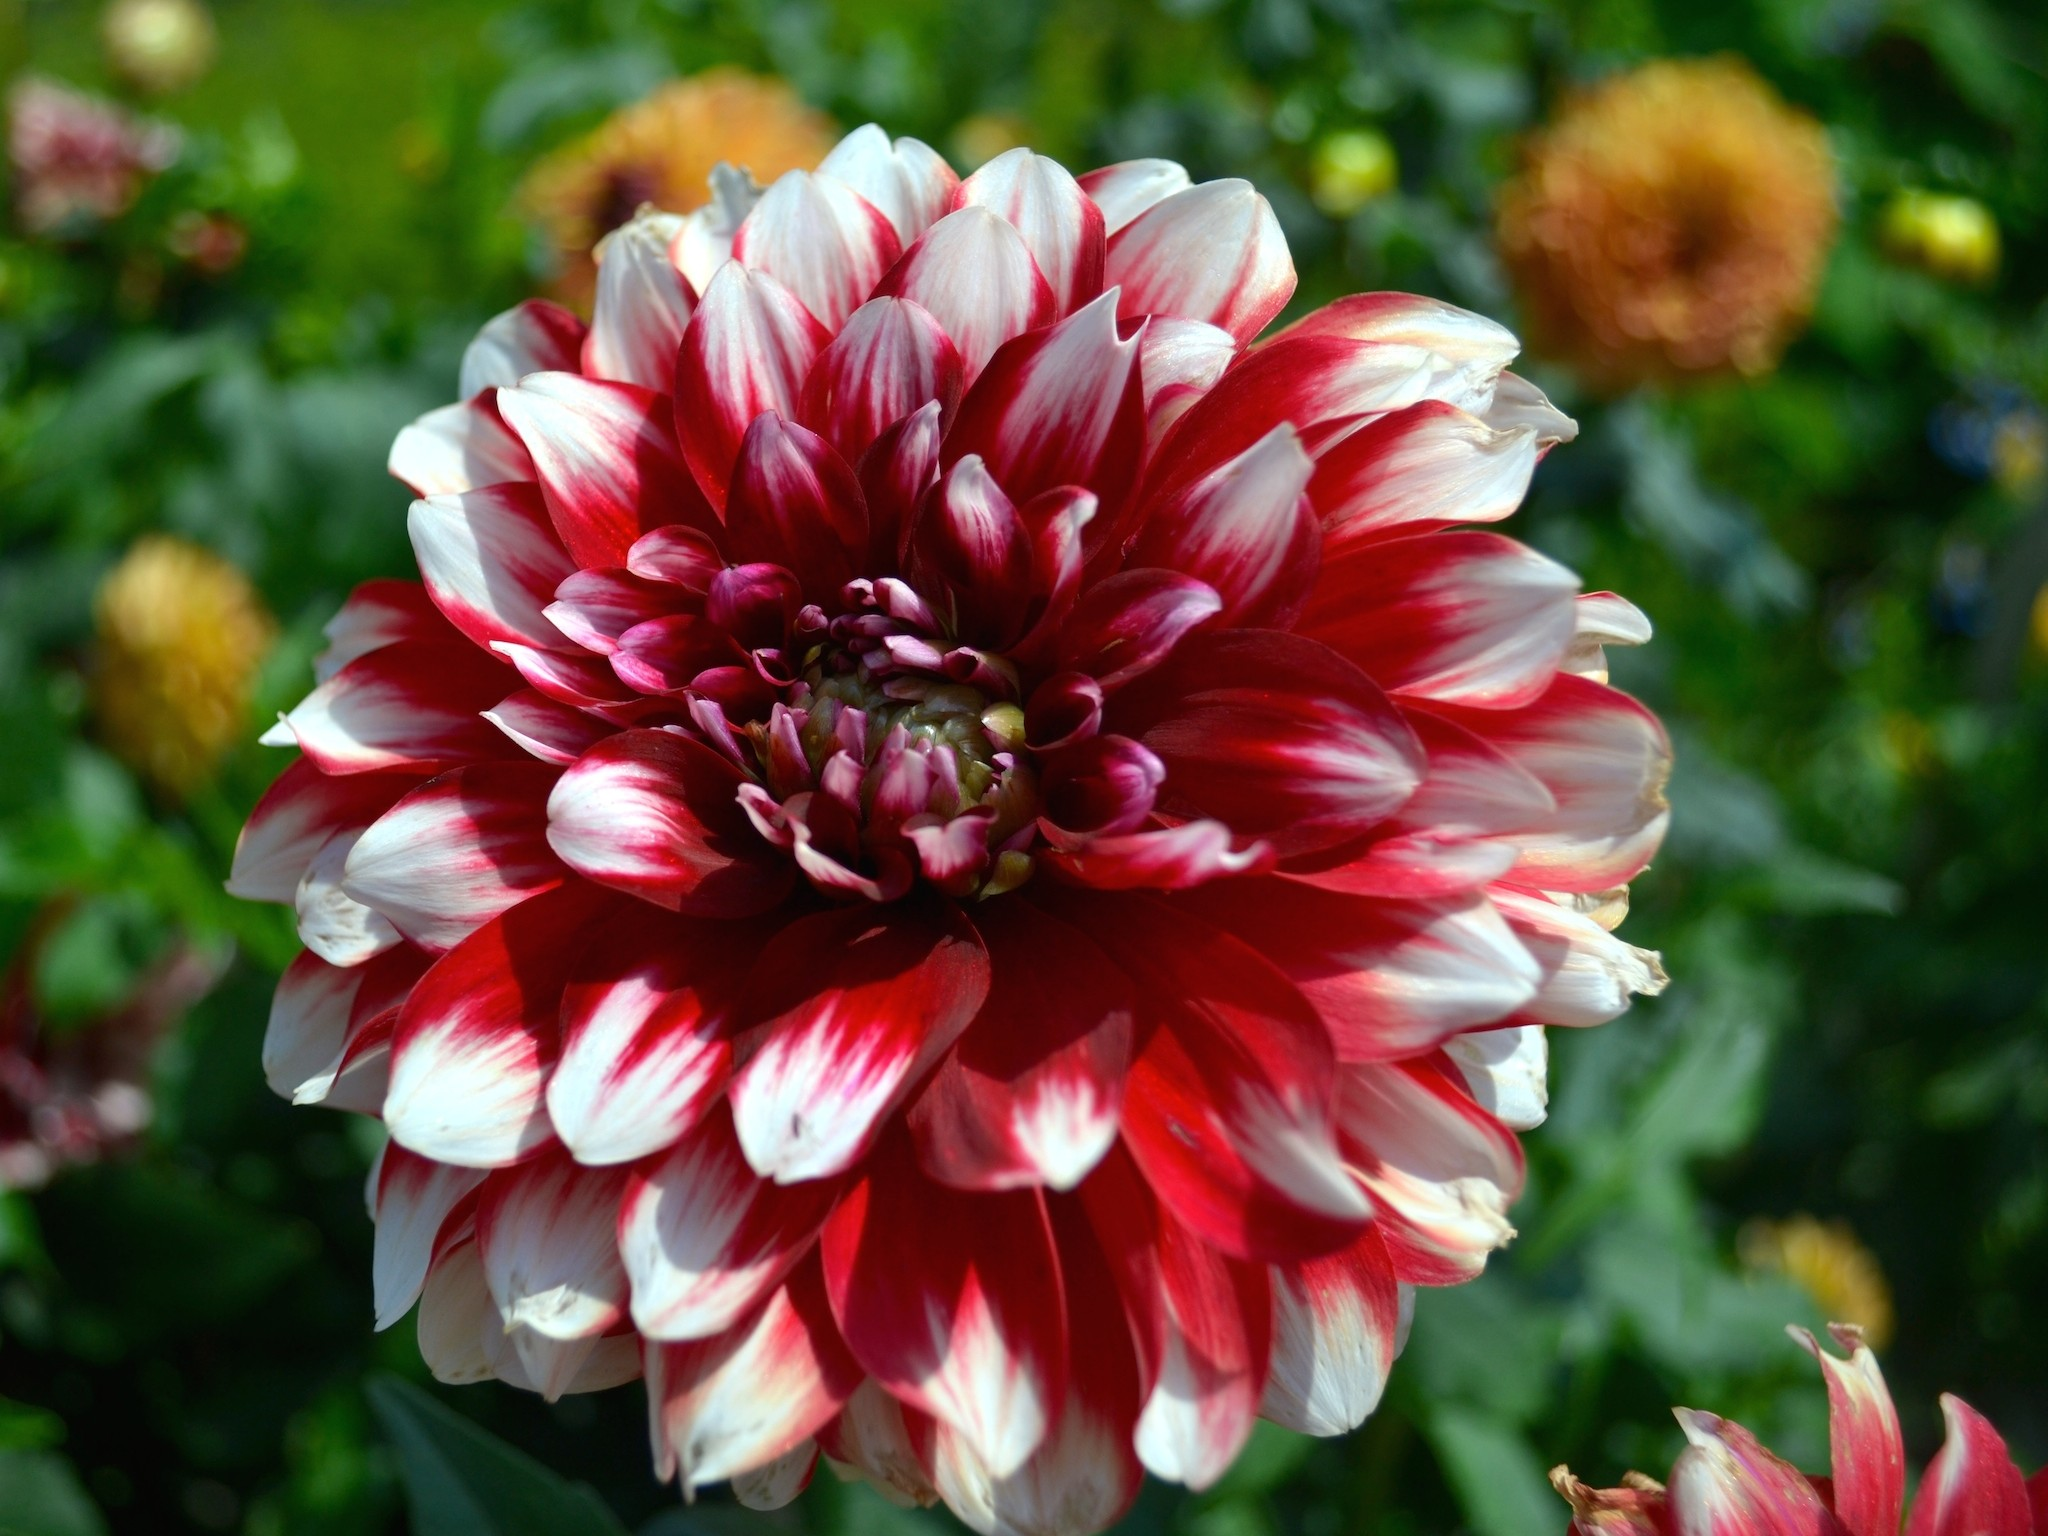 Red White Dahlia Flower Wallpaper Free Flower Downloads